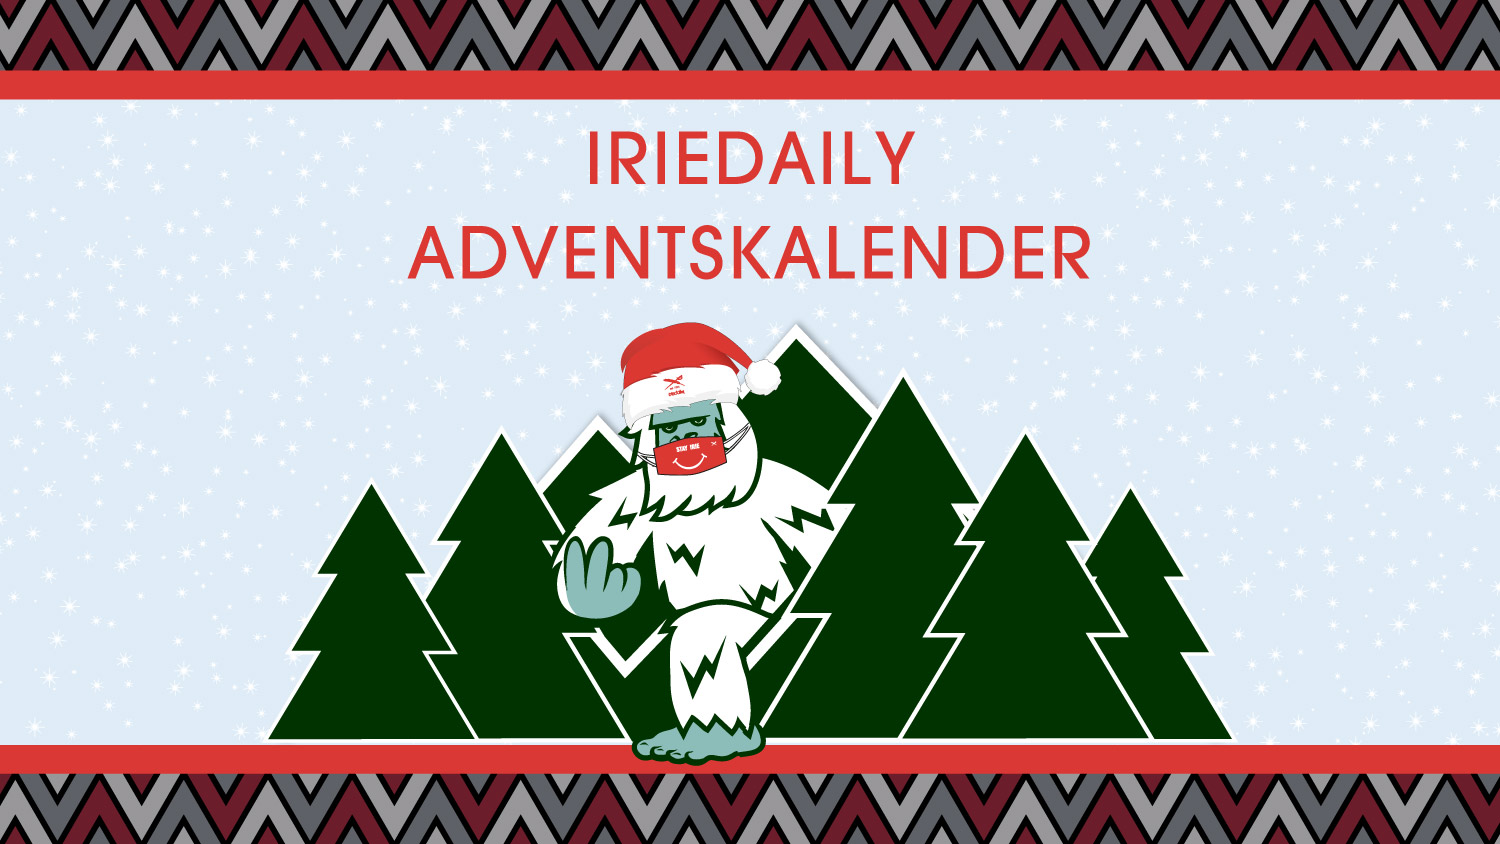 IRIEDAILY Adventskalender 2020 Blog